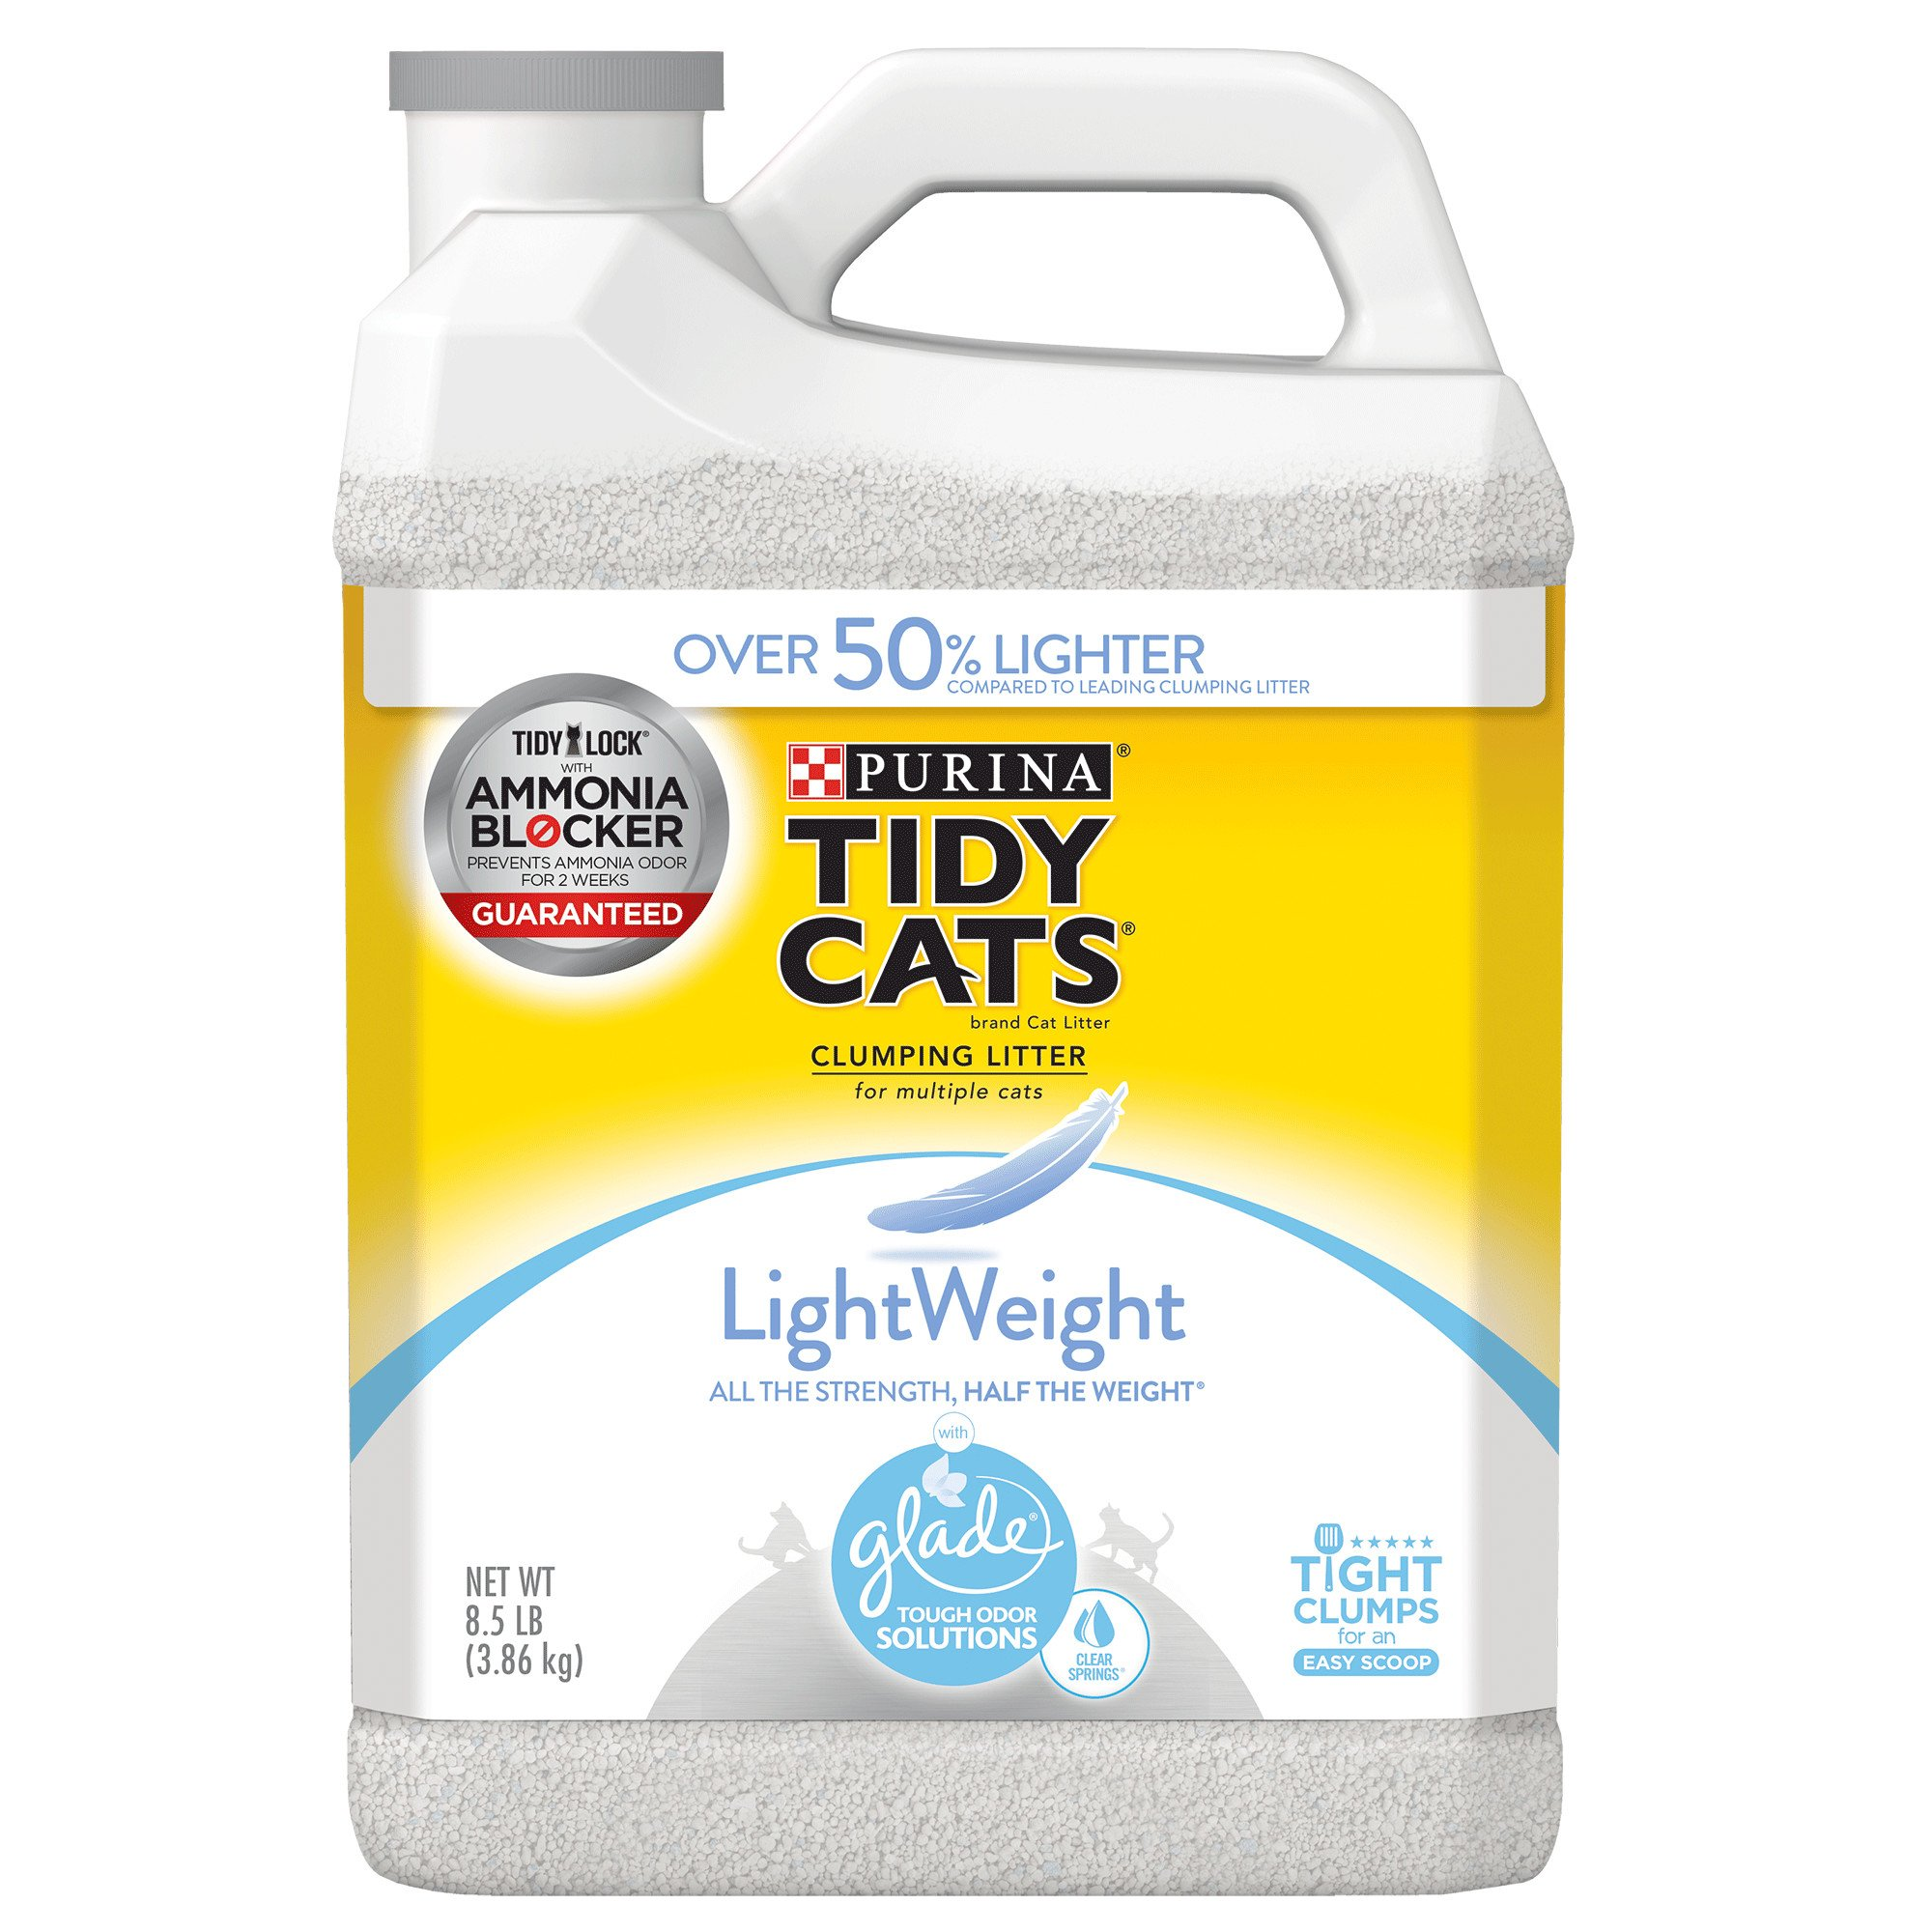 Purina Tidy Cats Glade Tough Odor Solutions Clear Springs Clumping Cat *Purina Tidy Cats Glade Tough Odor Solutions Clear Springs Clumping Cat Litter by *Purina Tidy Cats. $ $ 17 FREE Shipping on eligible orders. 2 out of 5 stars 1.